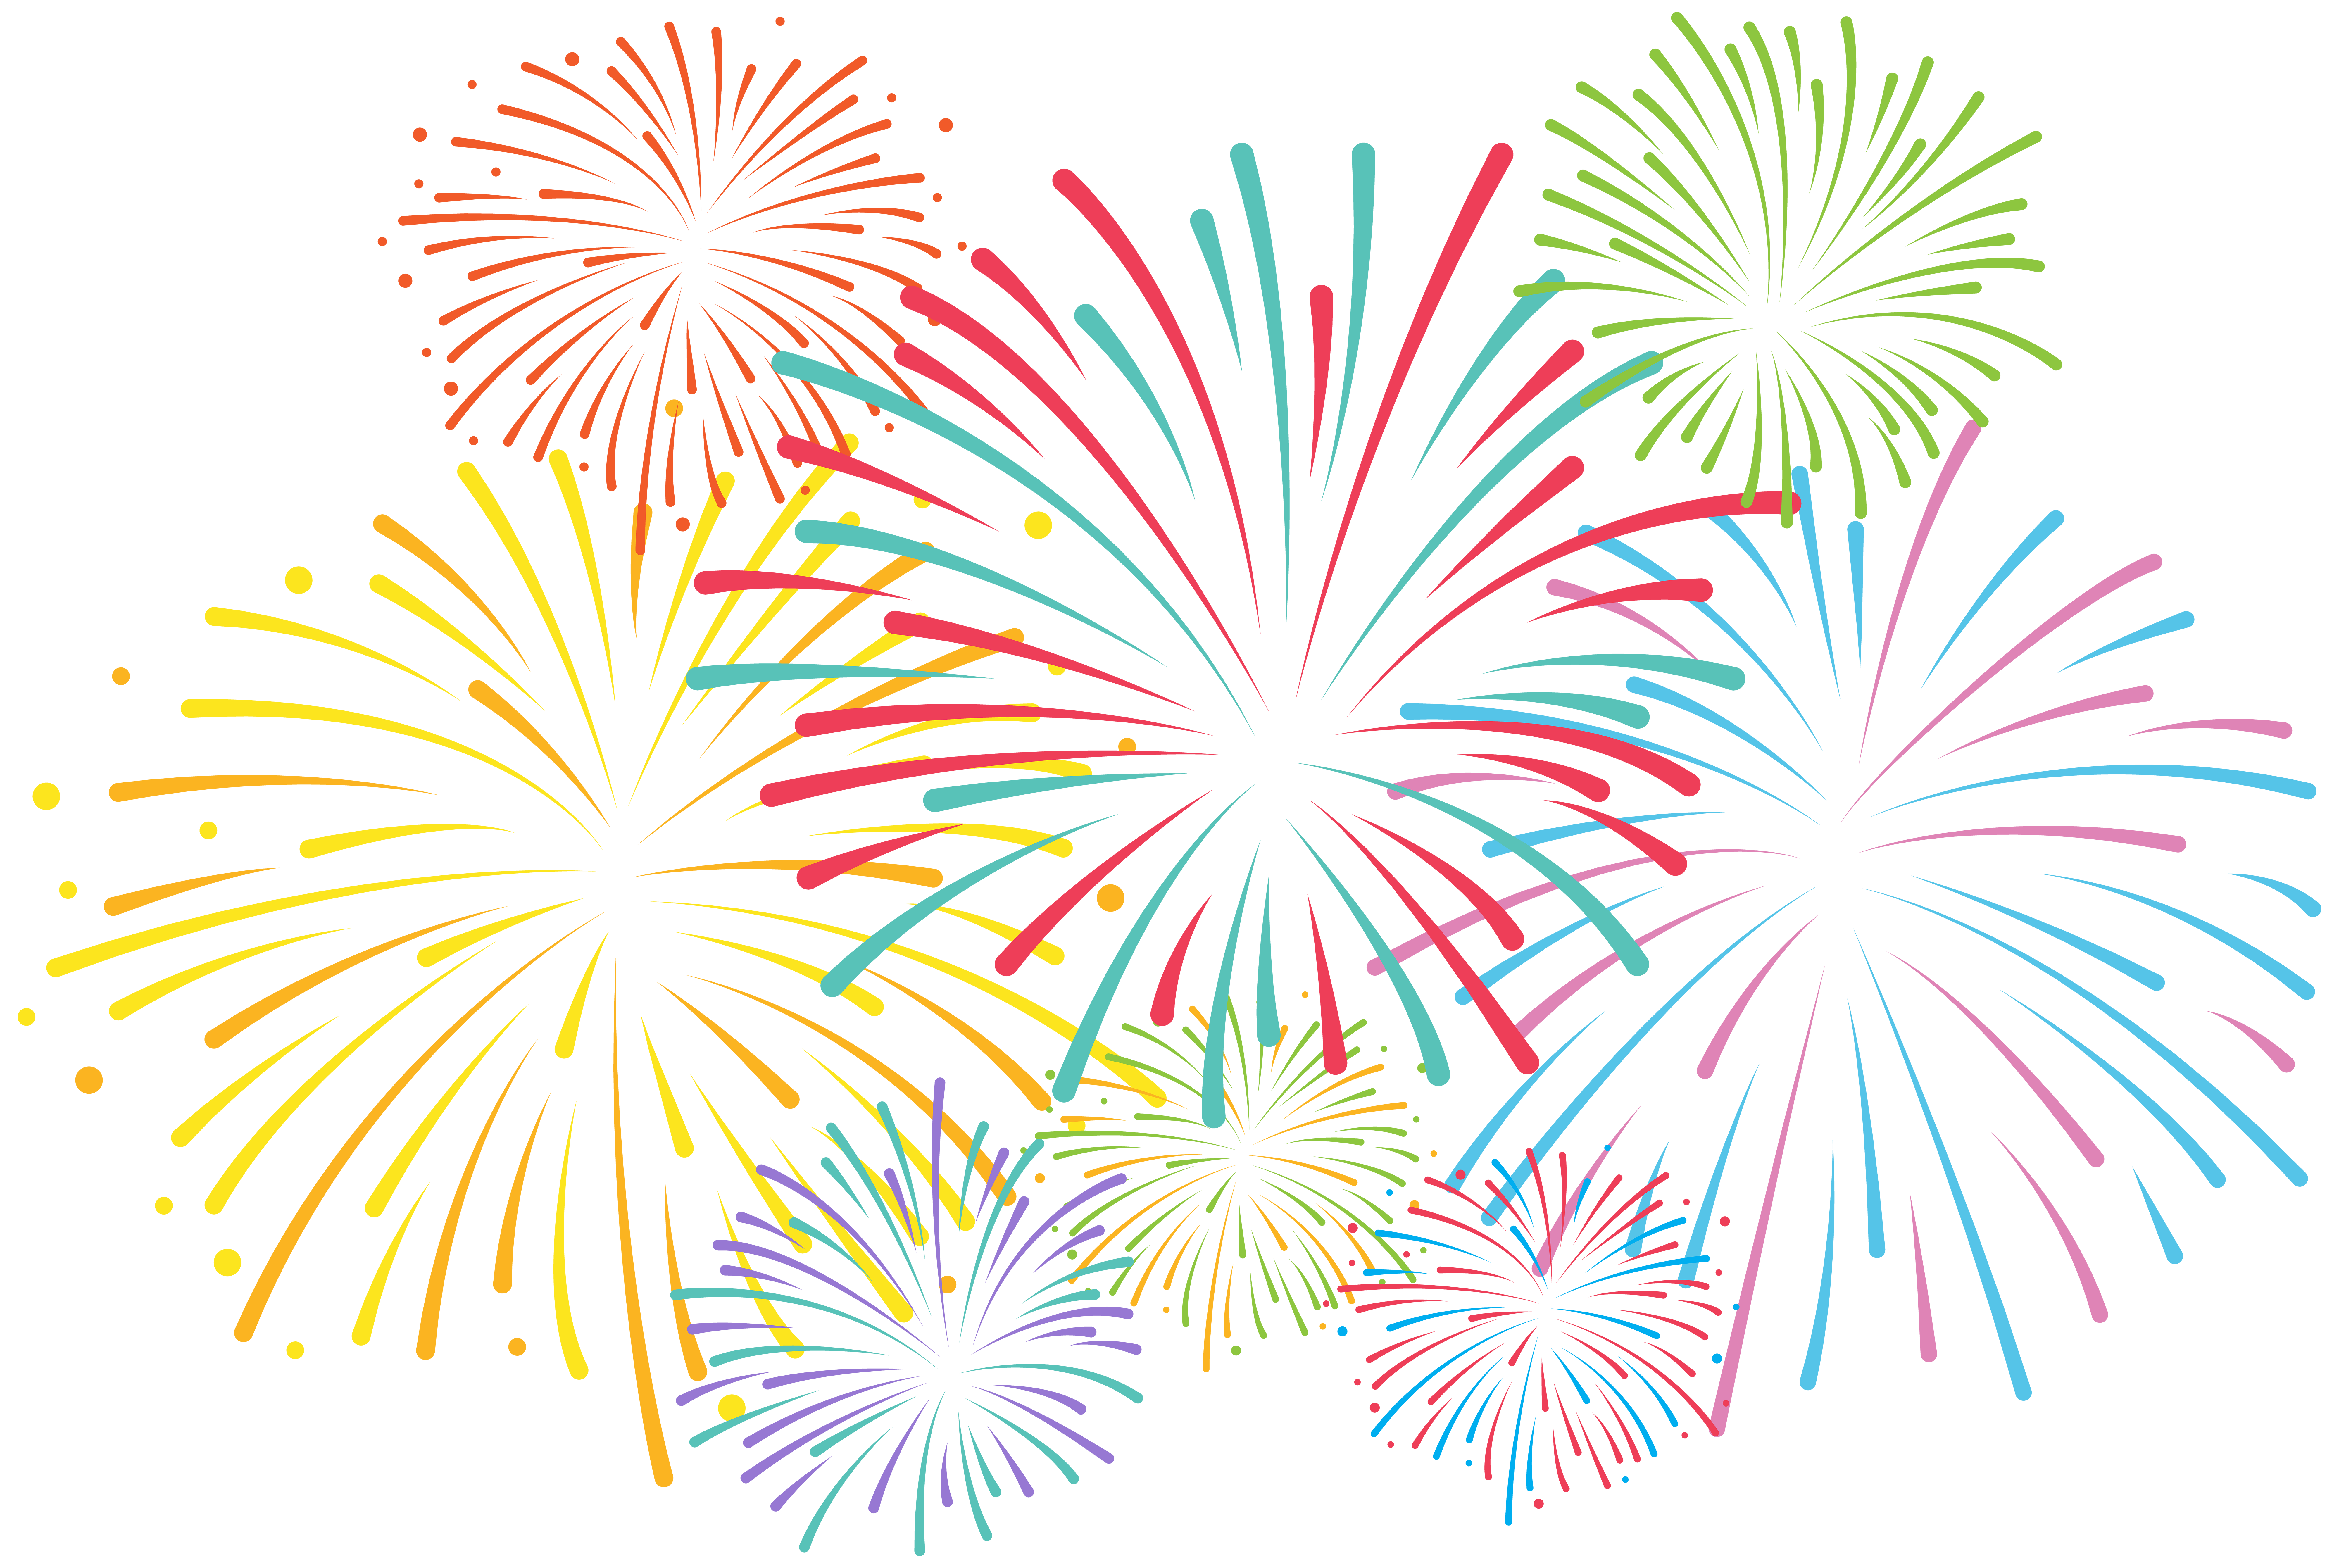 Wheat clipart gold paisley. Fireworks png clip art